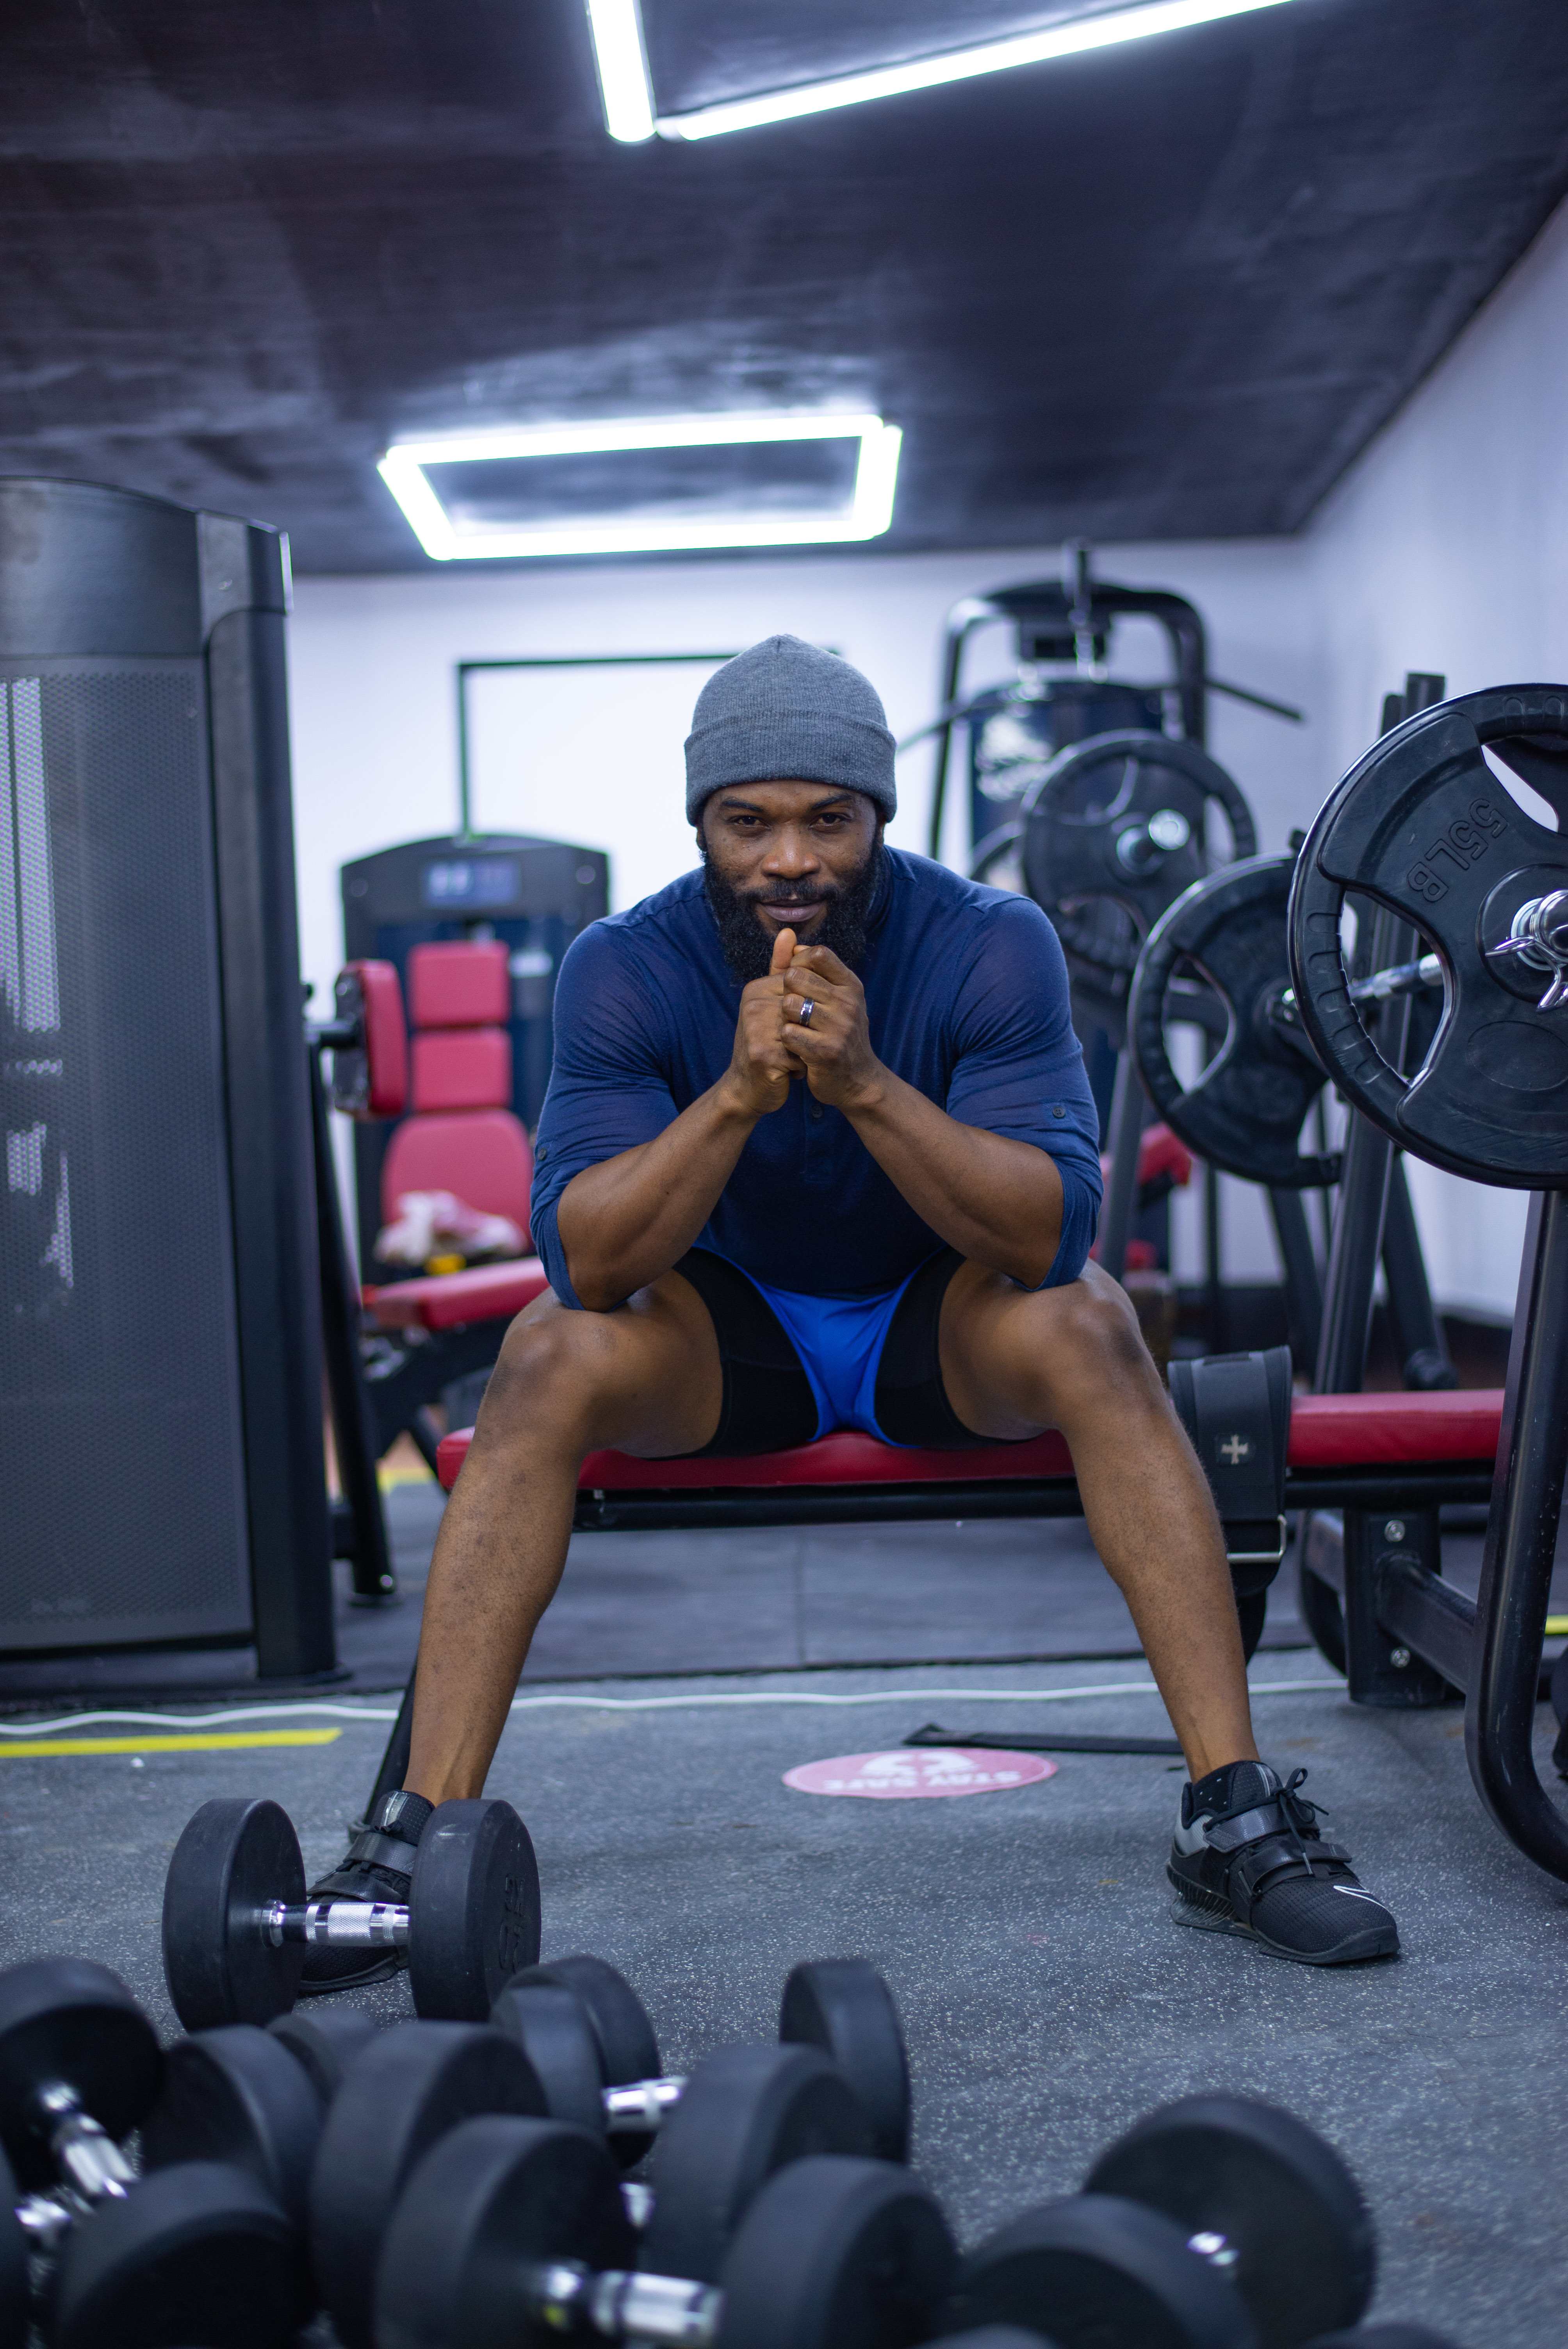 A man at the gym pose for pictures